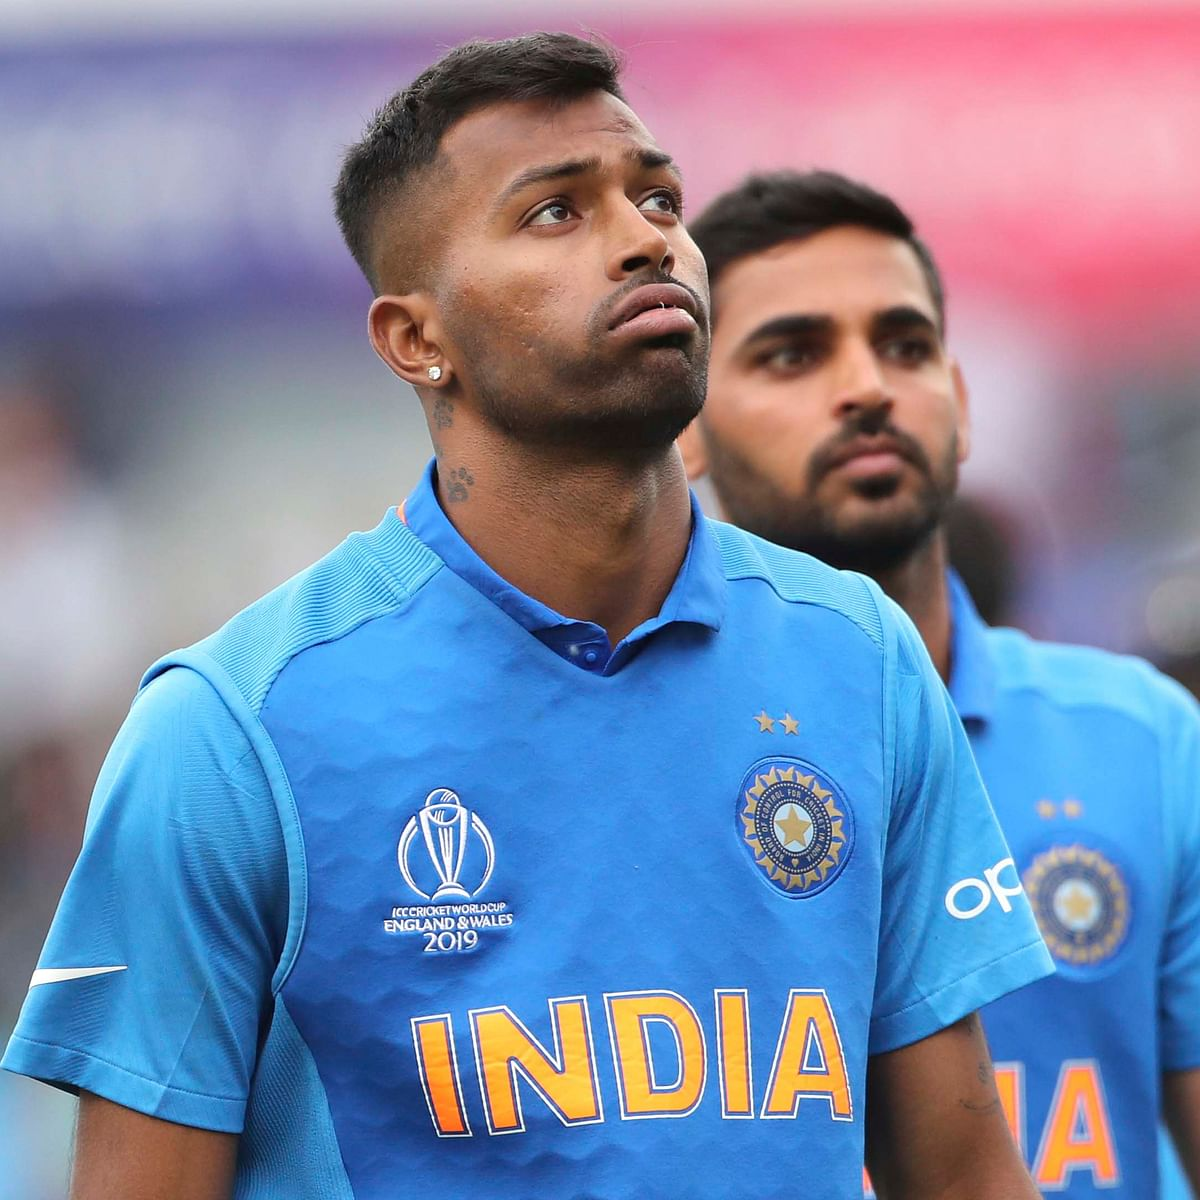 Mumbai Indian's bowling coach wants Hardik Pandya to get some playtime before IPL